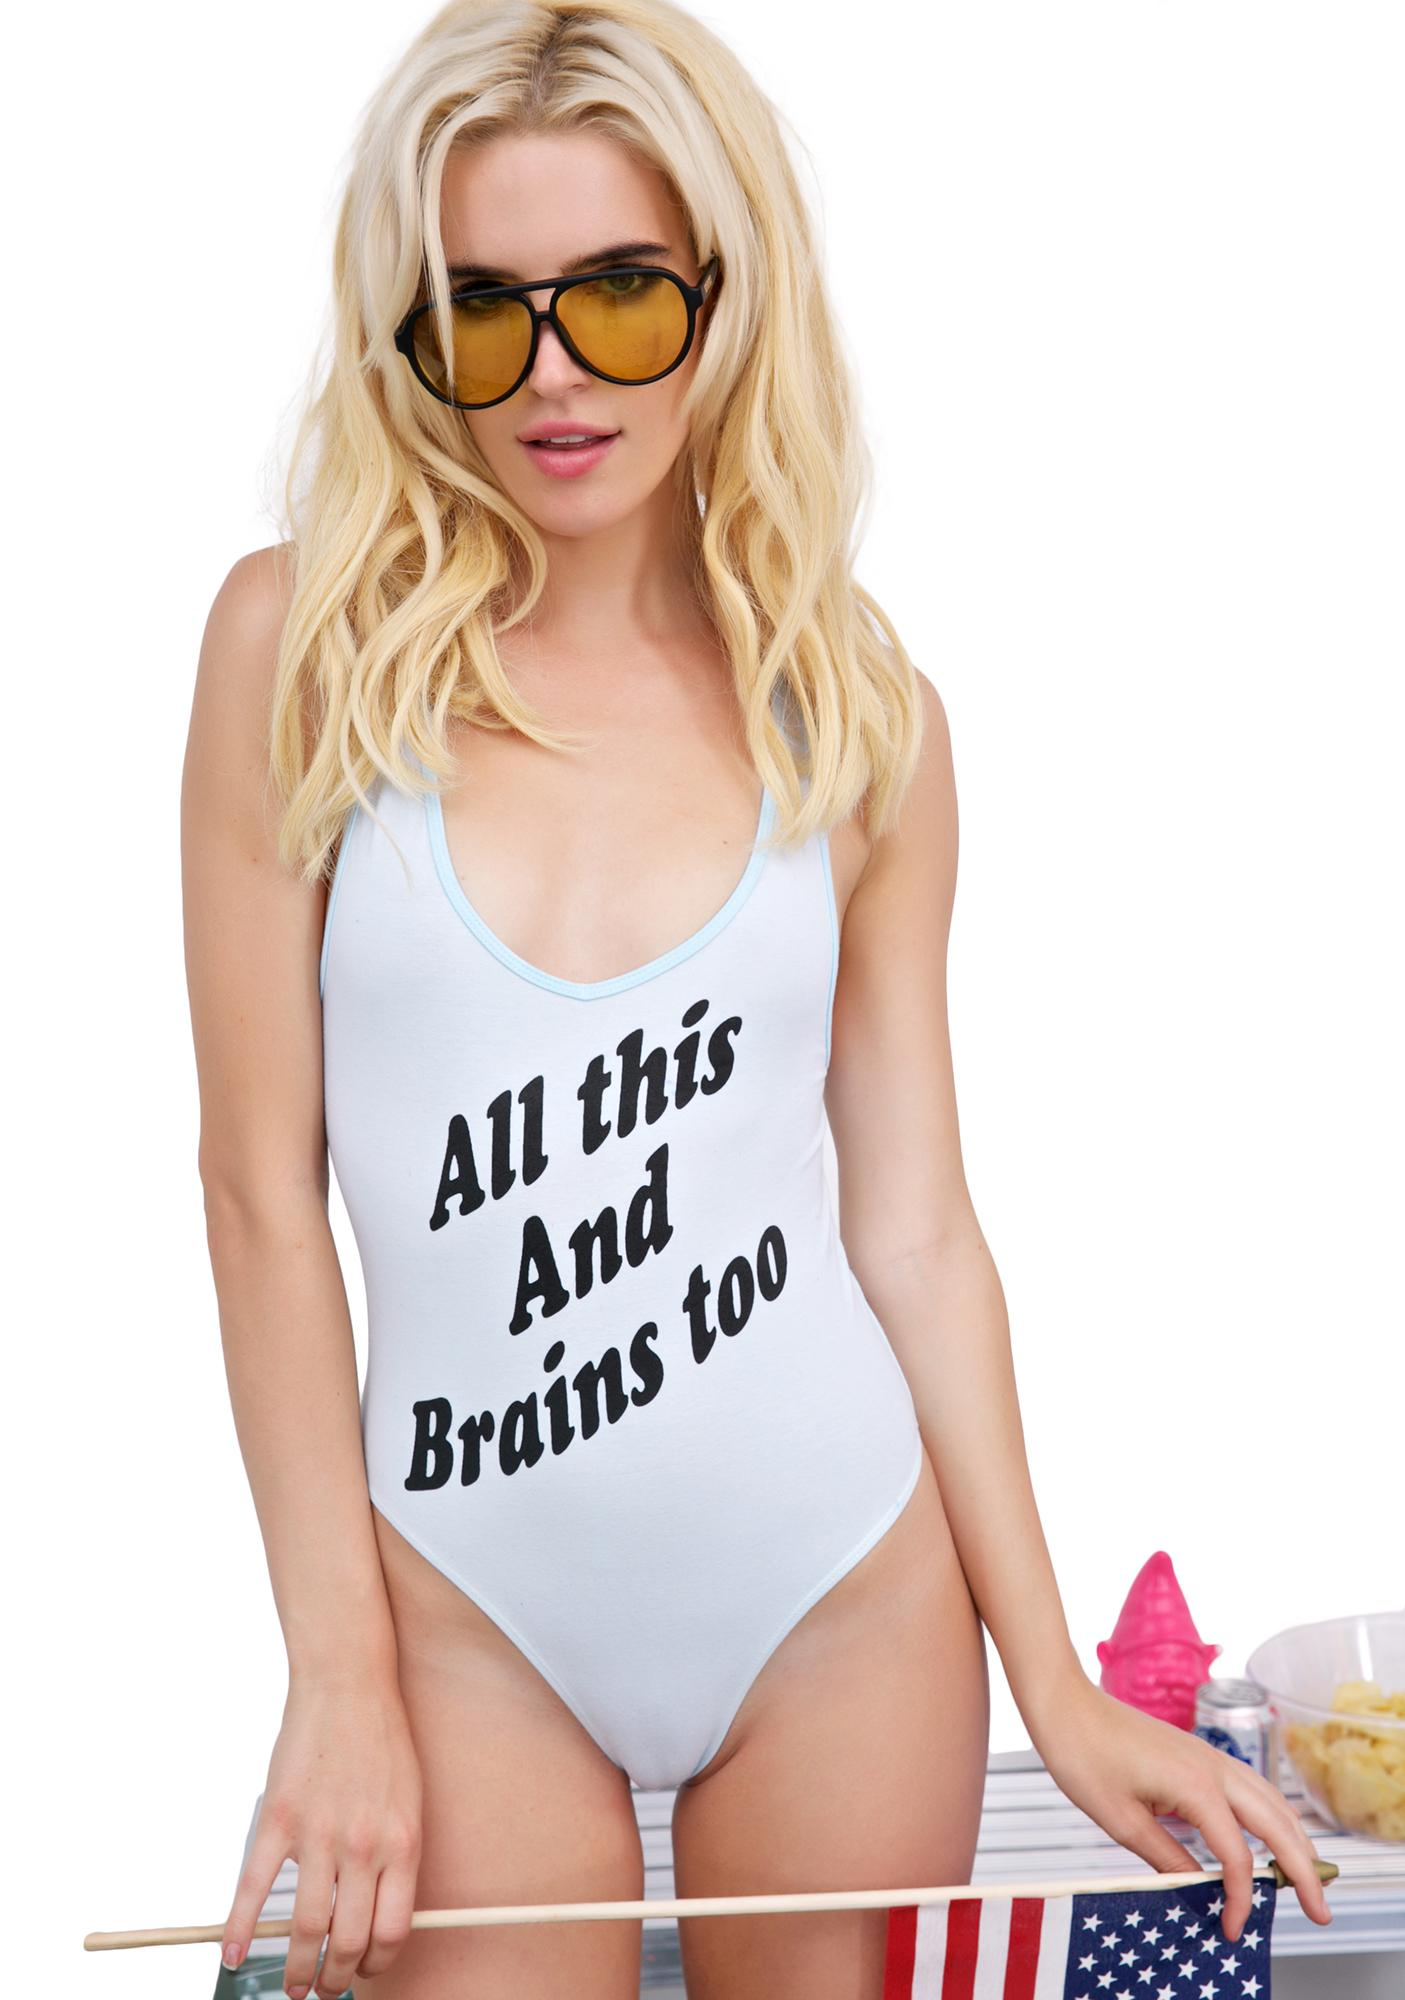 Burger And Friends Brains Too Bodysuit